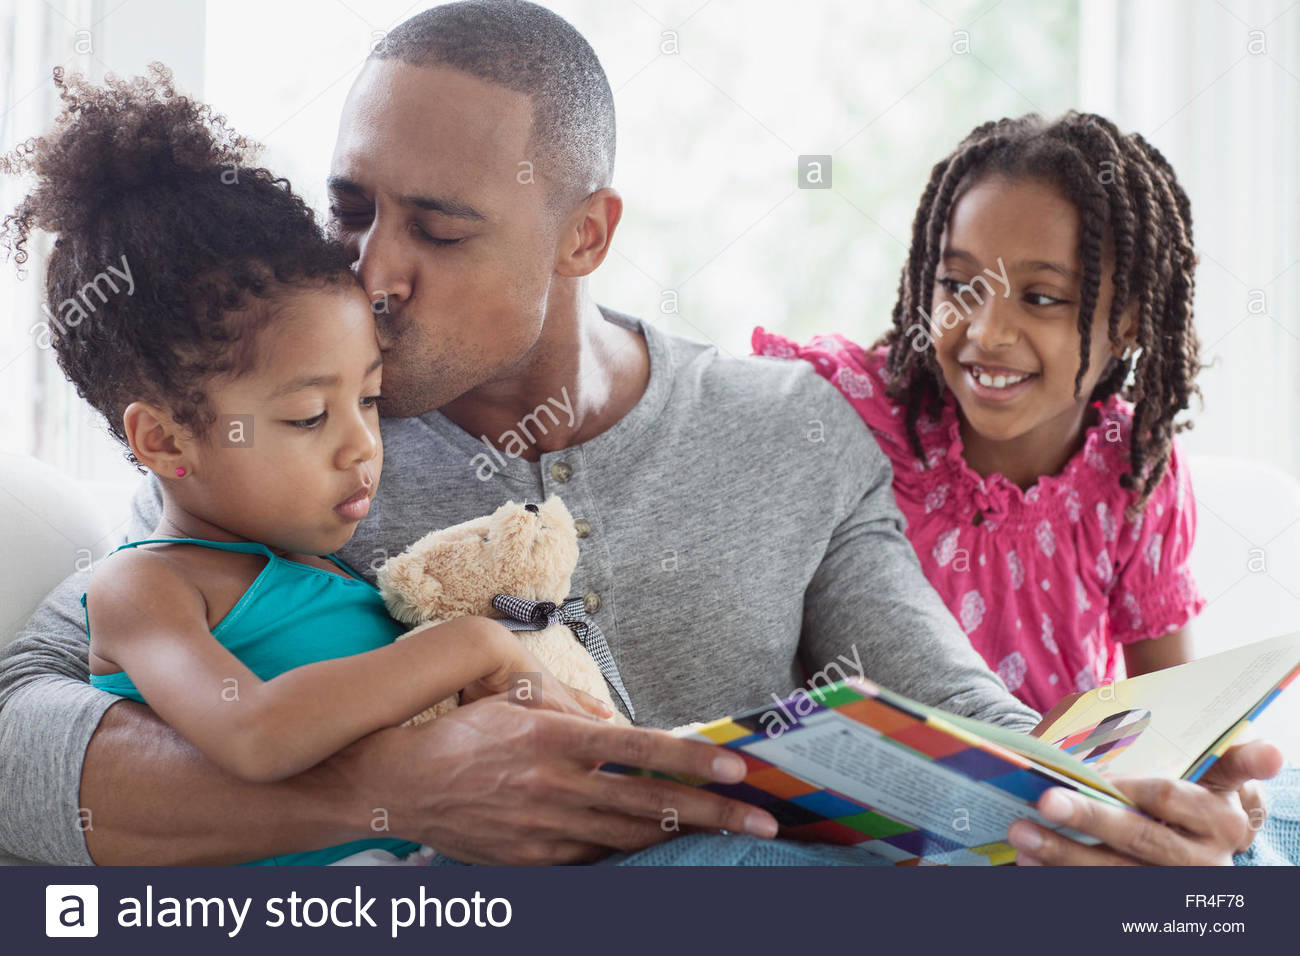 dad kissing youngest daughter during storytime - Stock Image